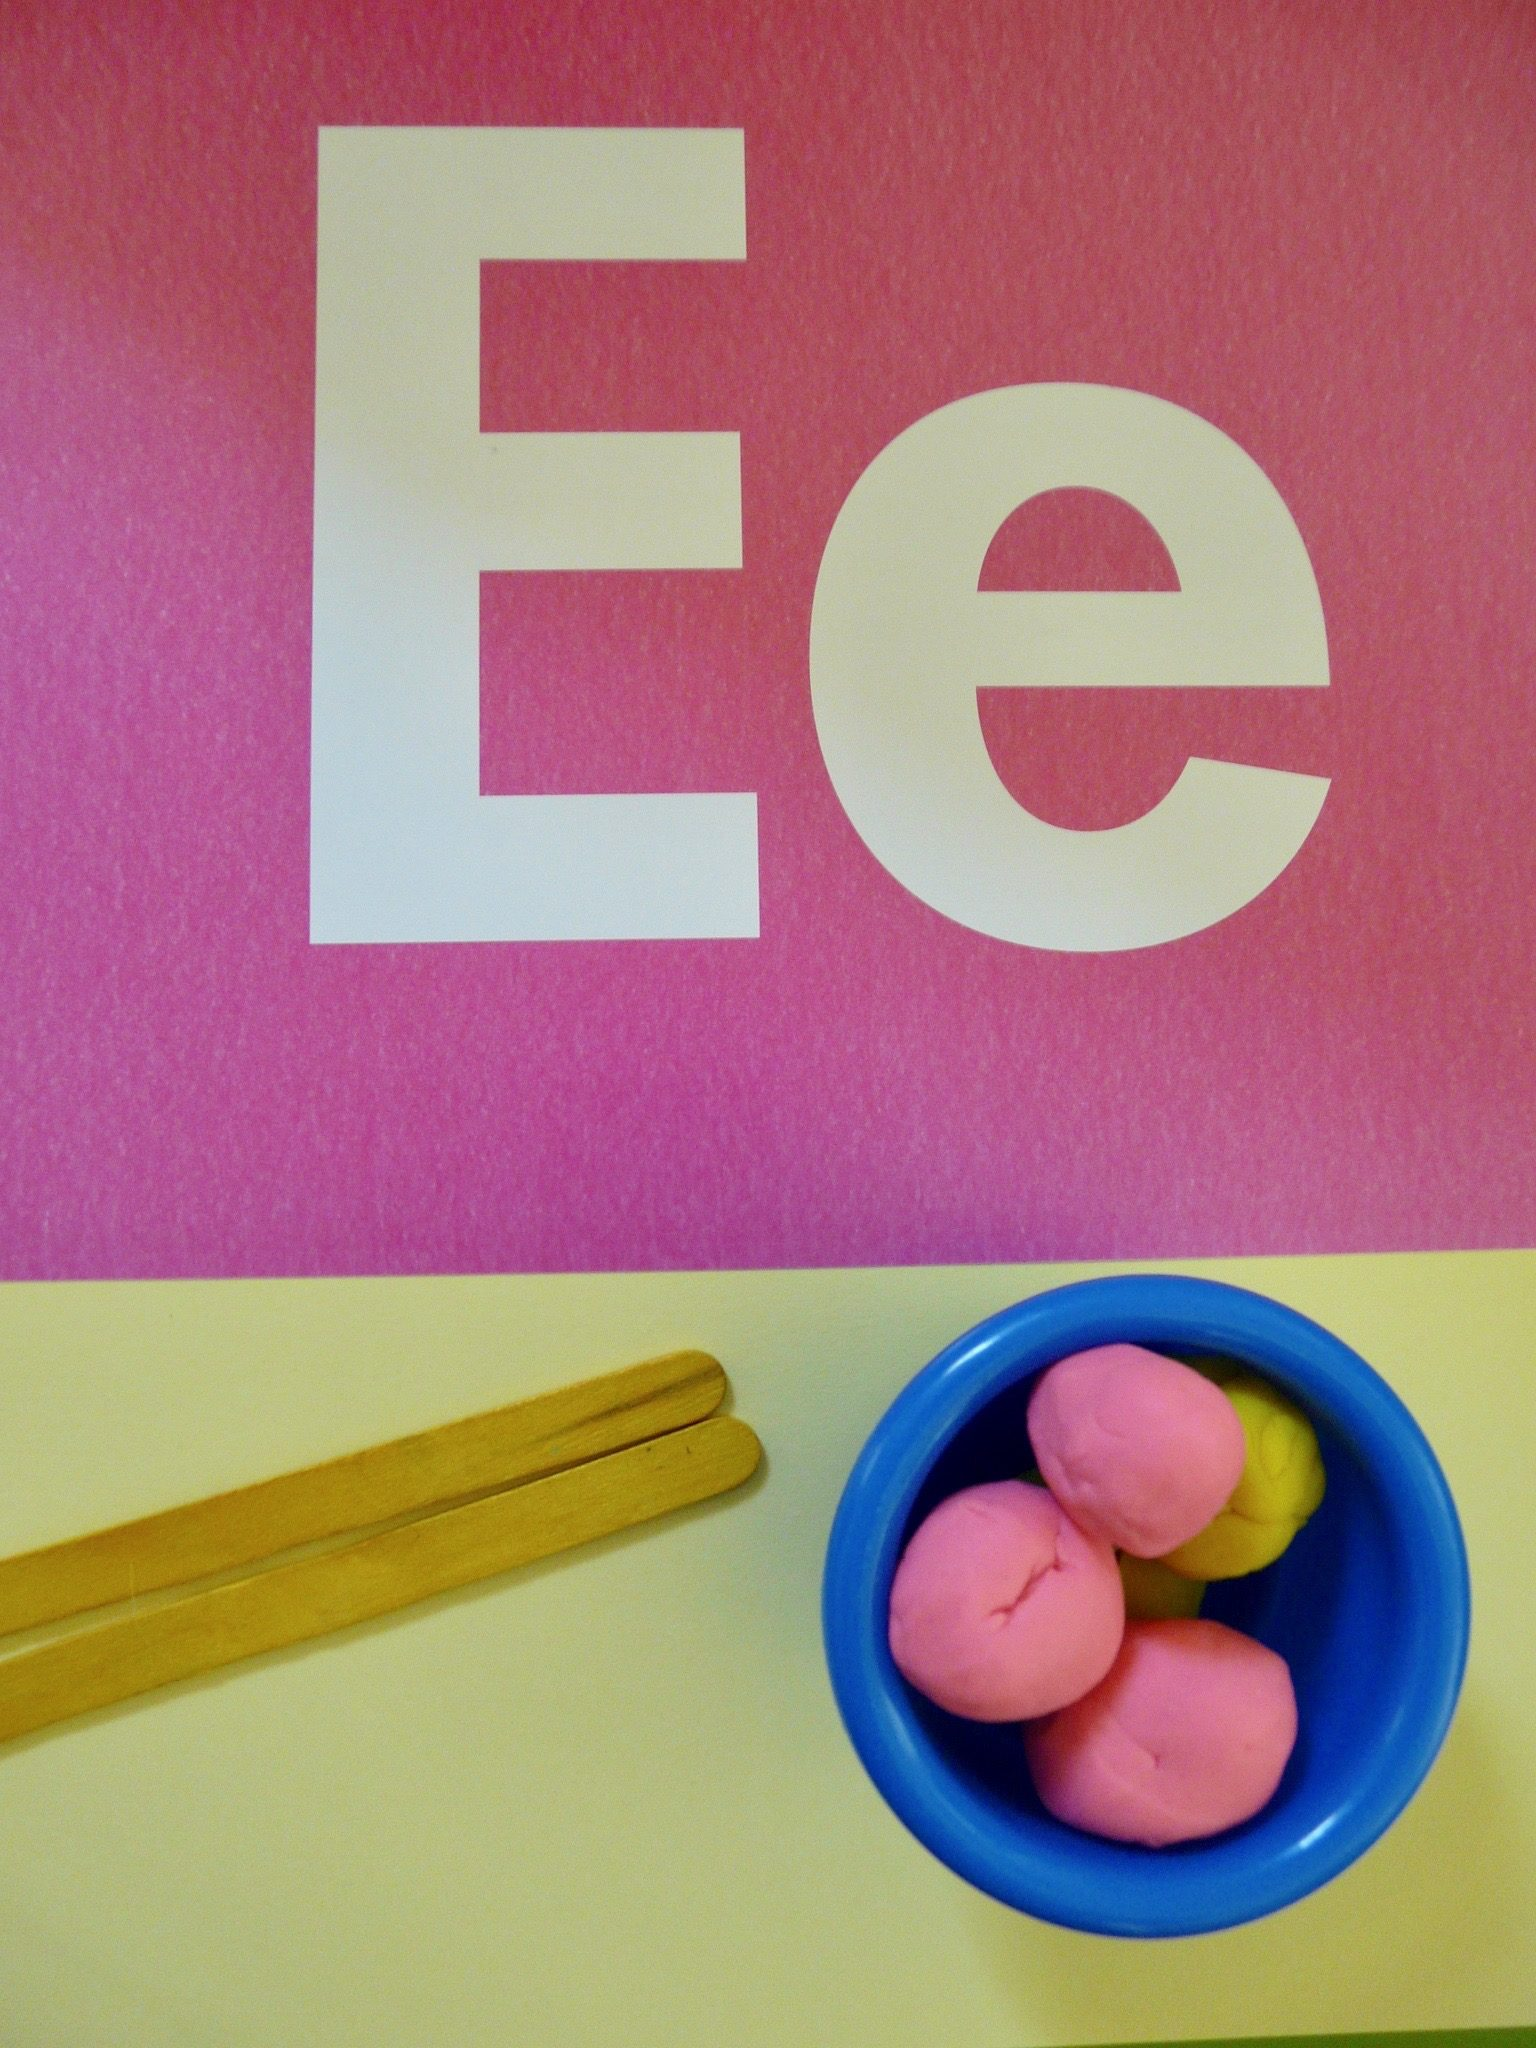 Letter E by Haydee Montemayor from Love and Treasure blog www.loveandtreasure.com